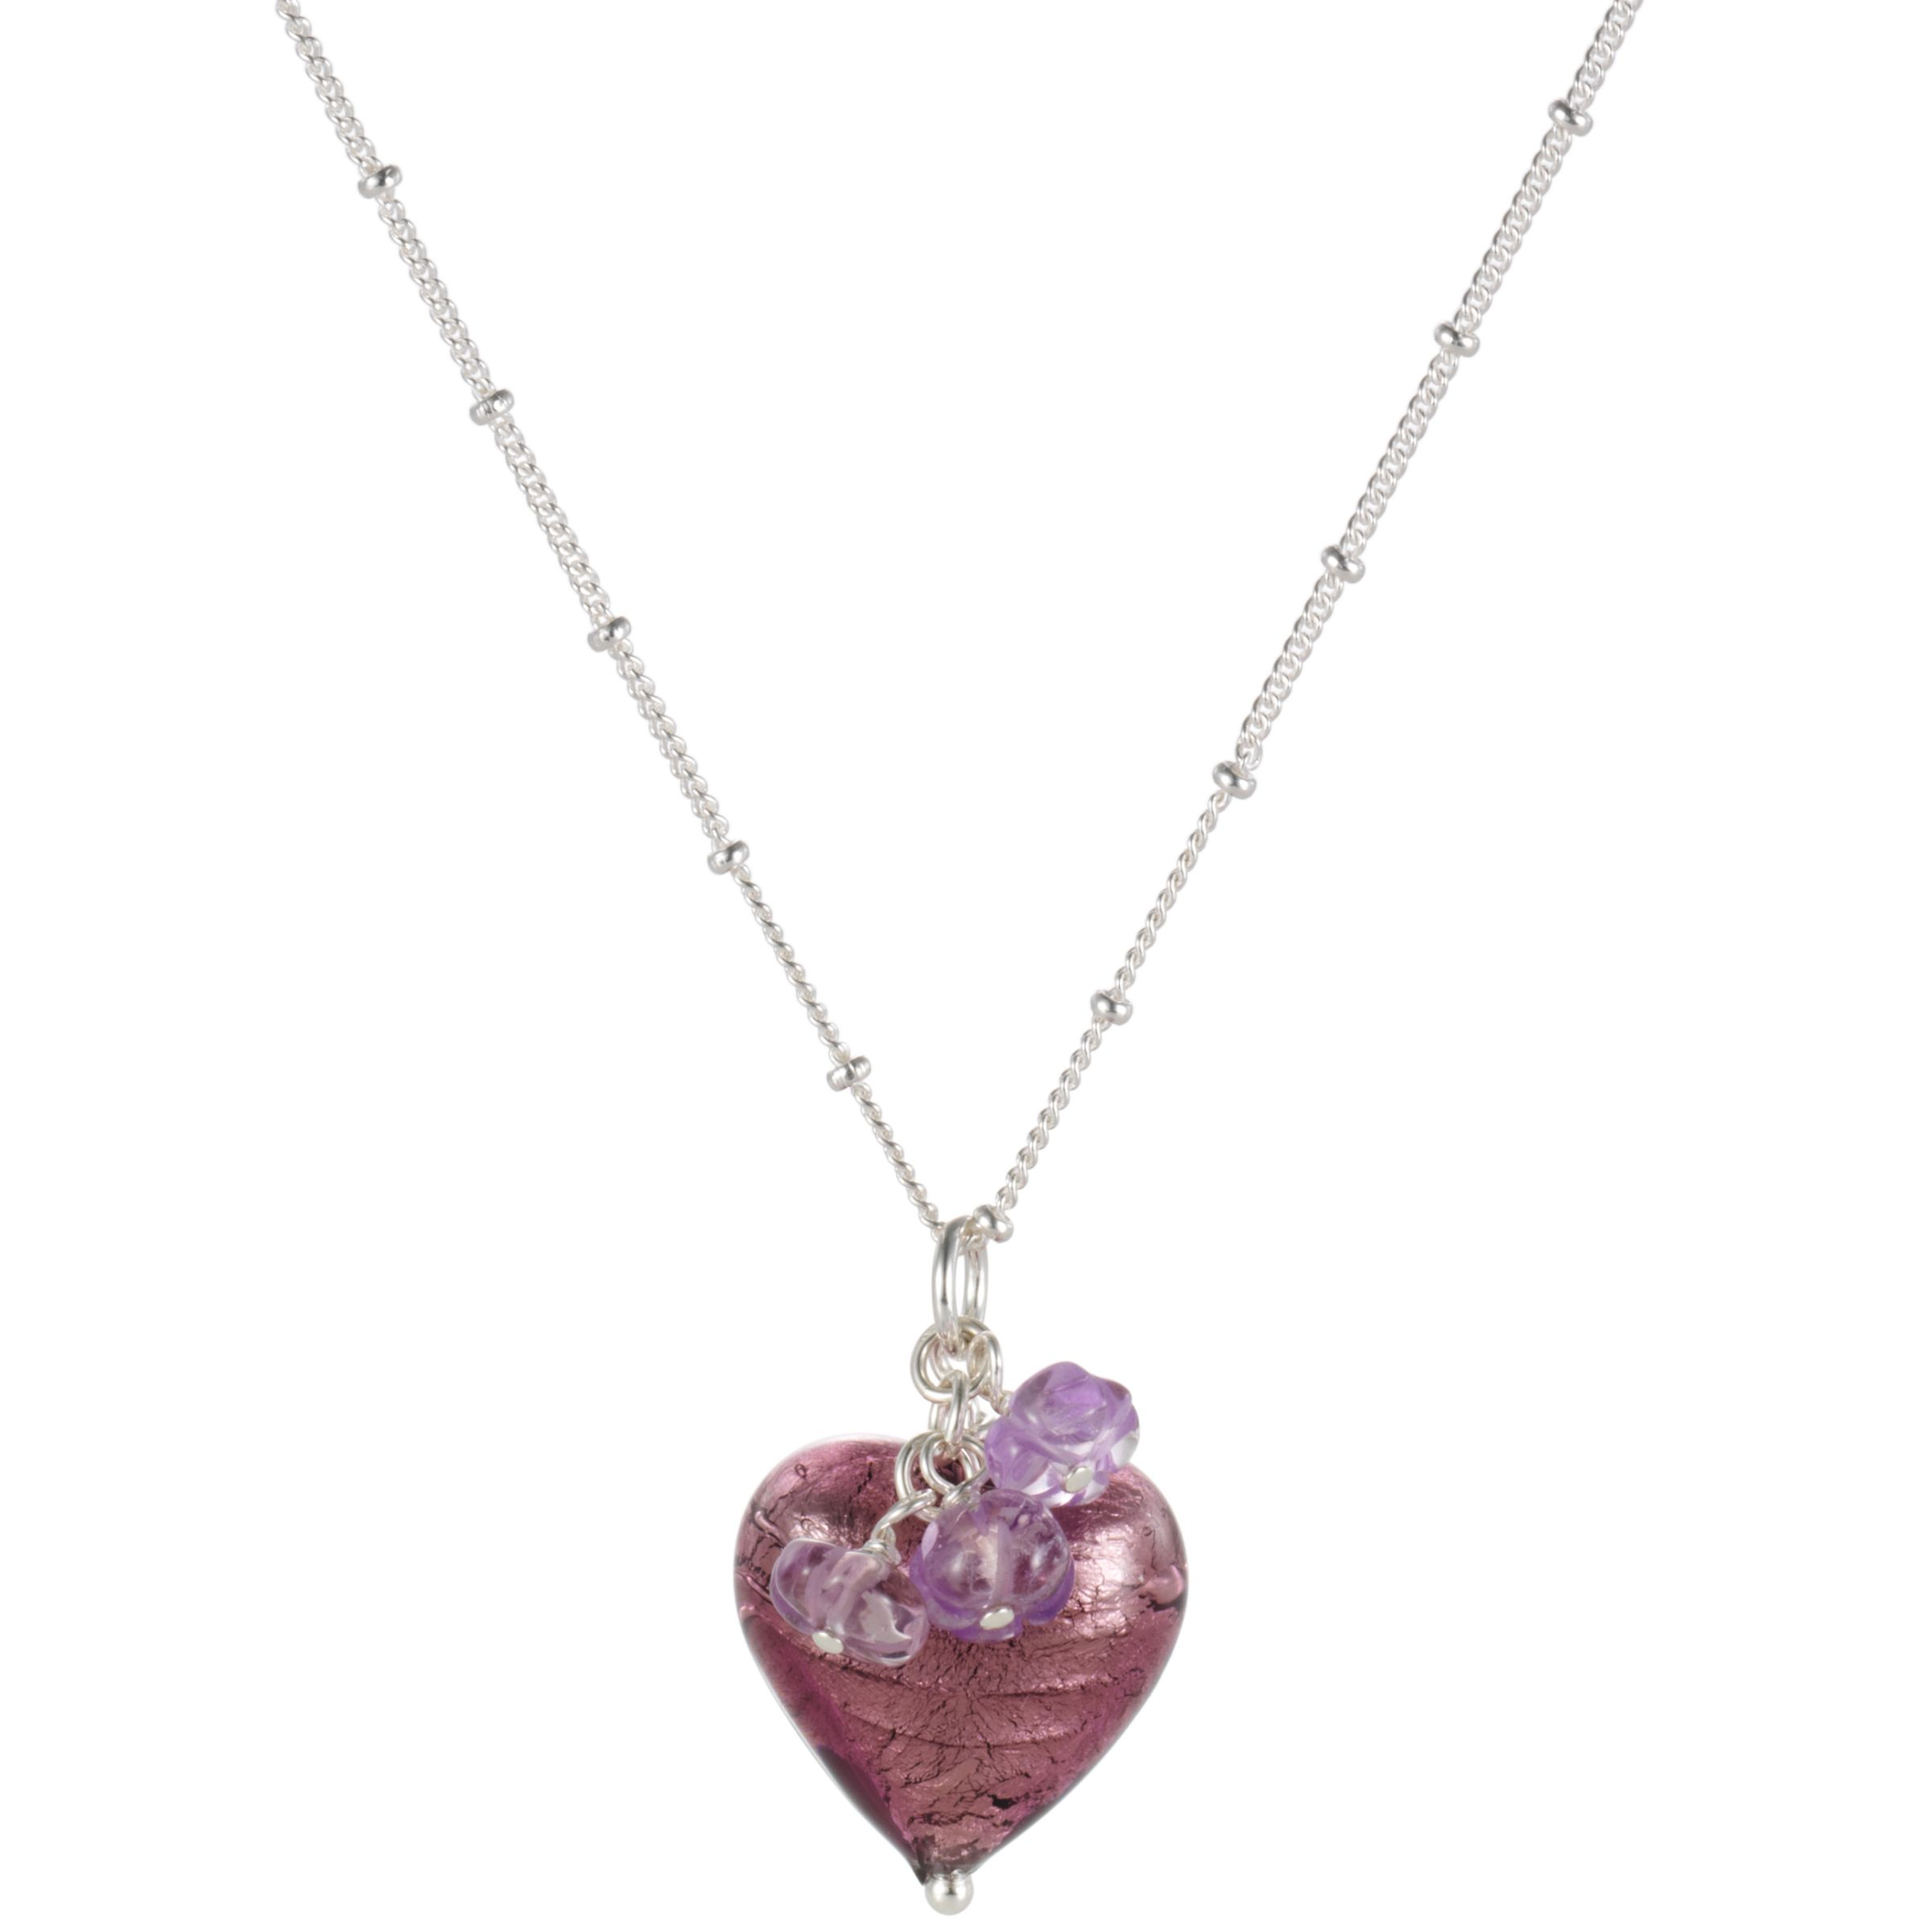 Martick Plum Murano Glass Heart Cluster Pendant Necklace